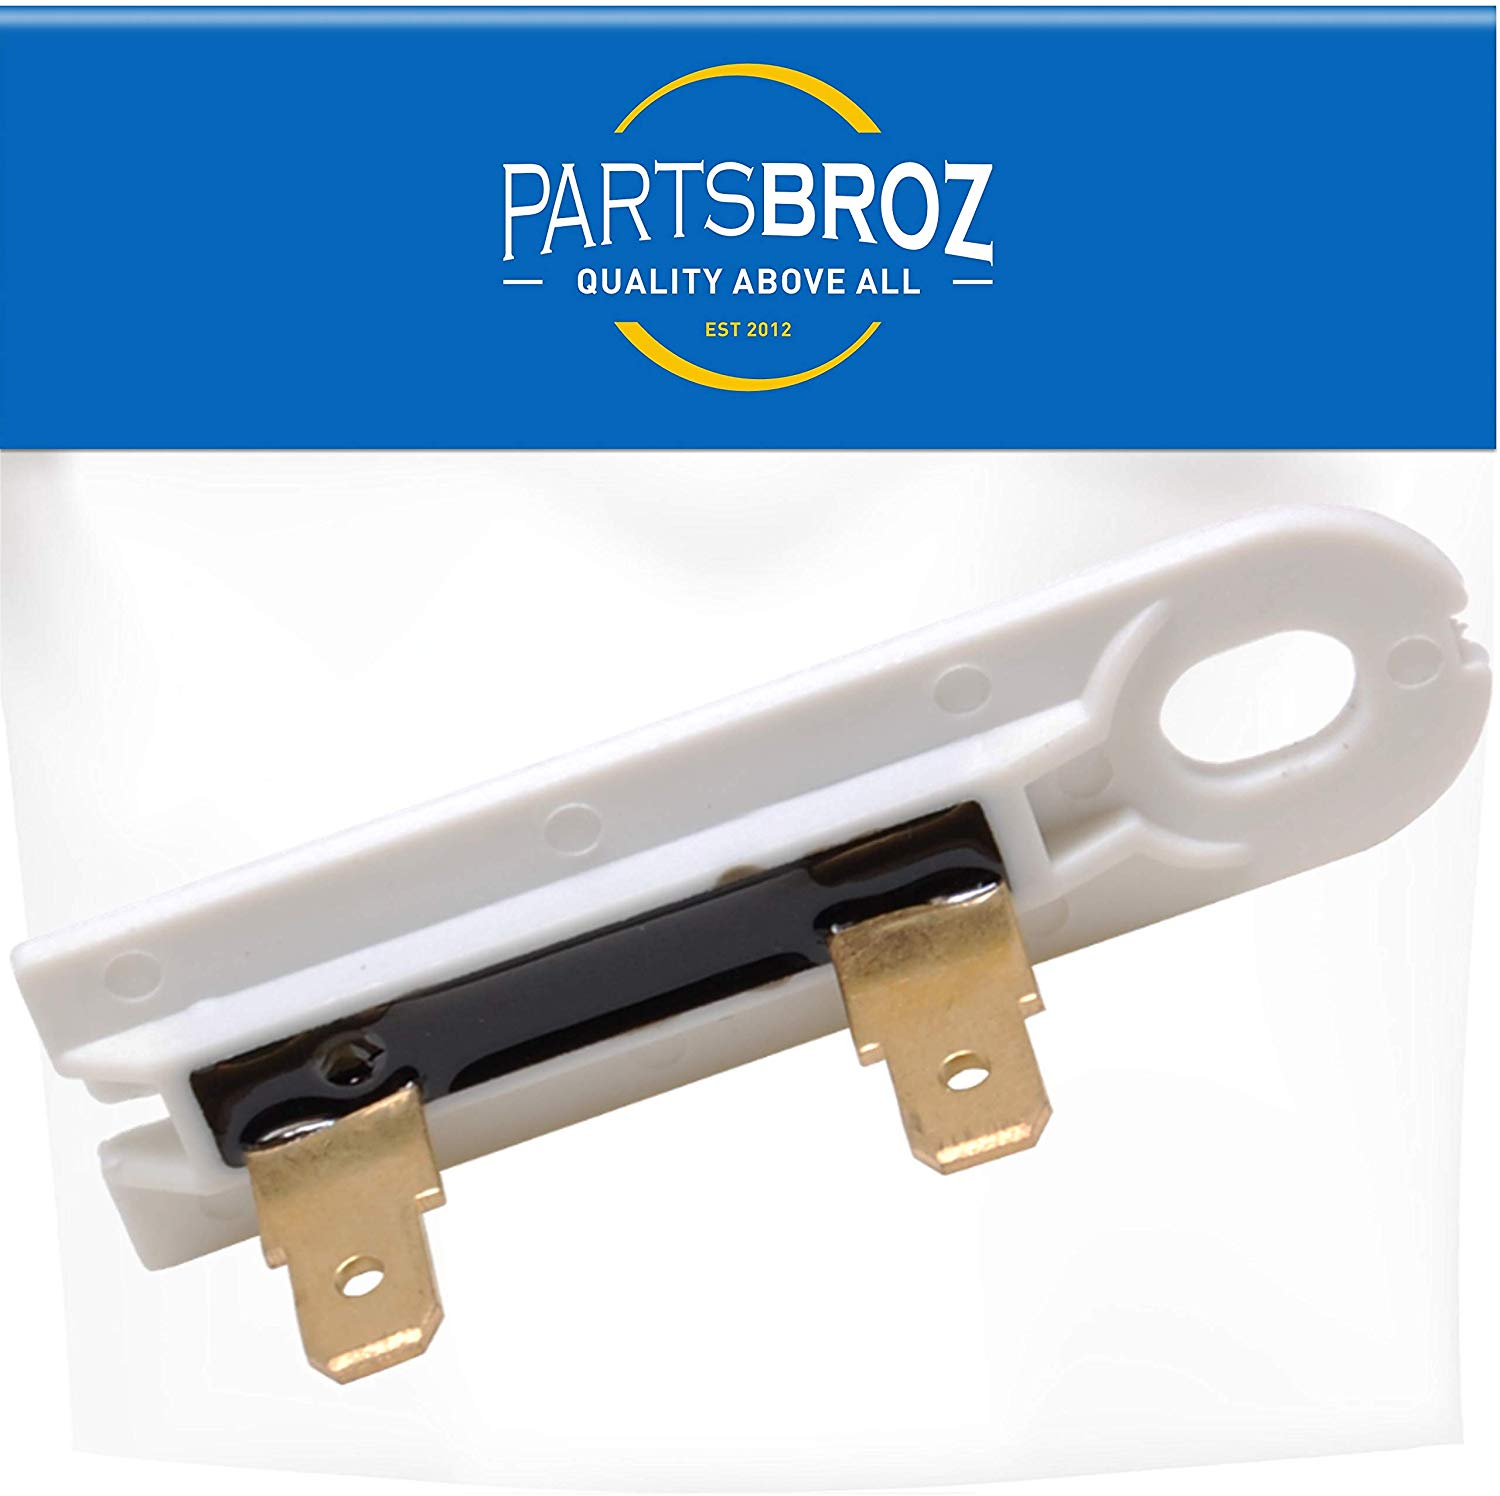 Official Parts Wholesale 80005 Replaces Part Numbers WP3392519 694511 AP6008325 PS11741460 Single 3388651 WP3392519VP ET401 PartsBroz 3392519 Dryer Thermal Fuse Replacement part for Whirlpool /& Kenmore Dryers